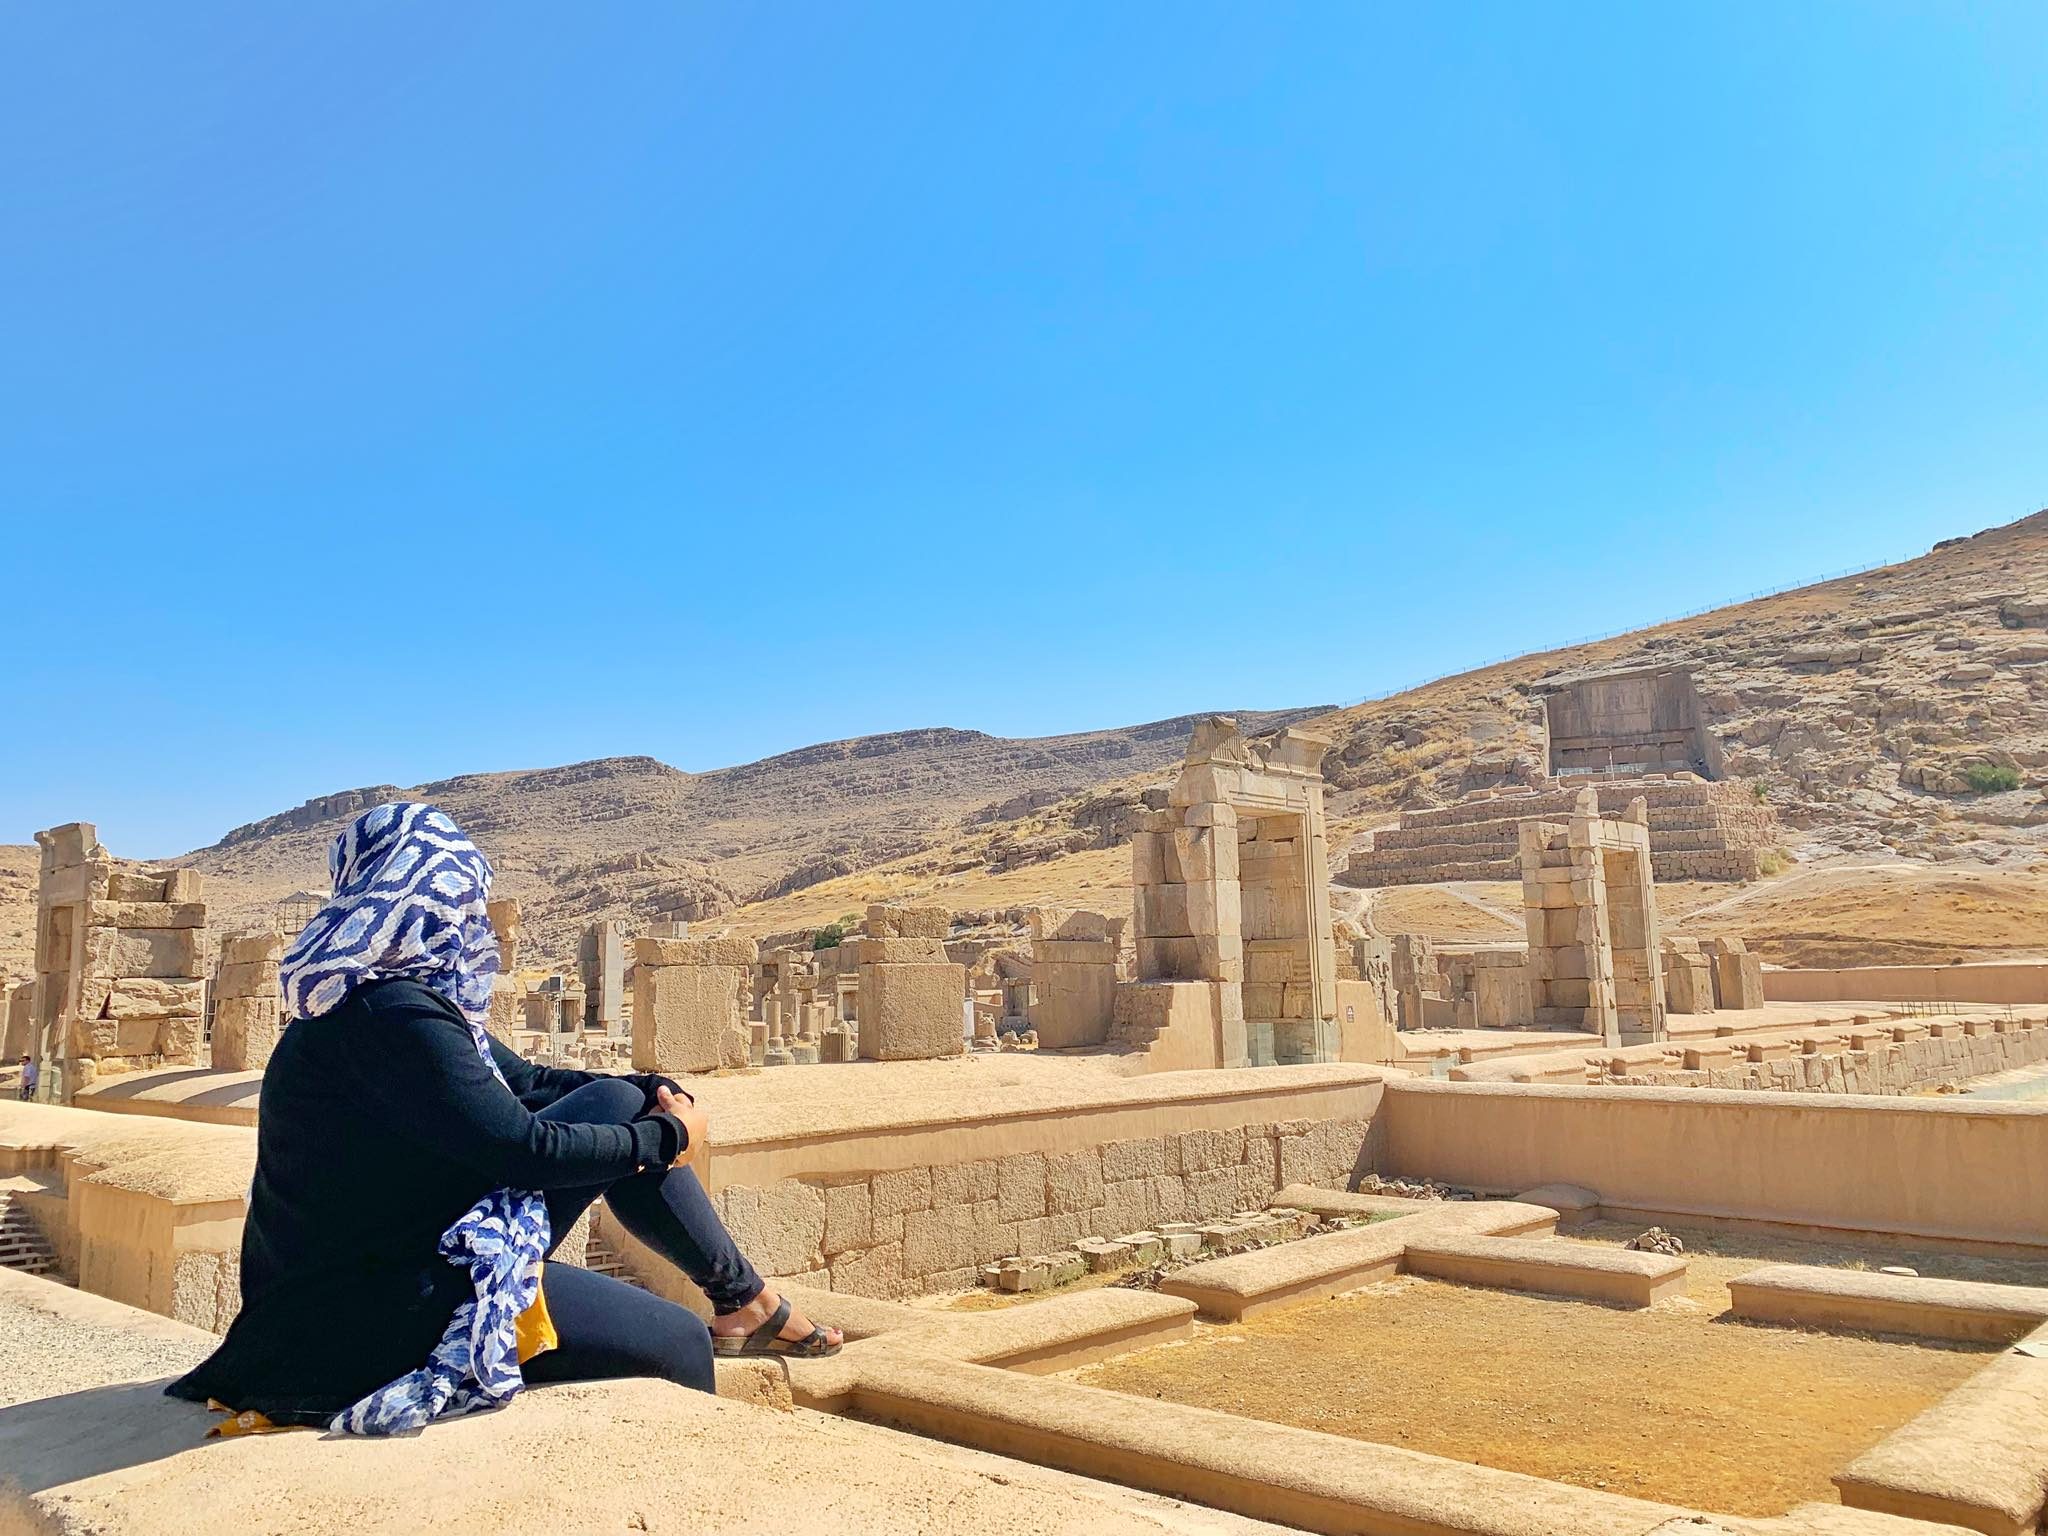 Kach Solo Travels in 2019 UNESCO heritages sites of Persepolis and Pasagardae12.jpg